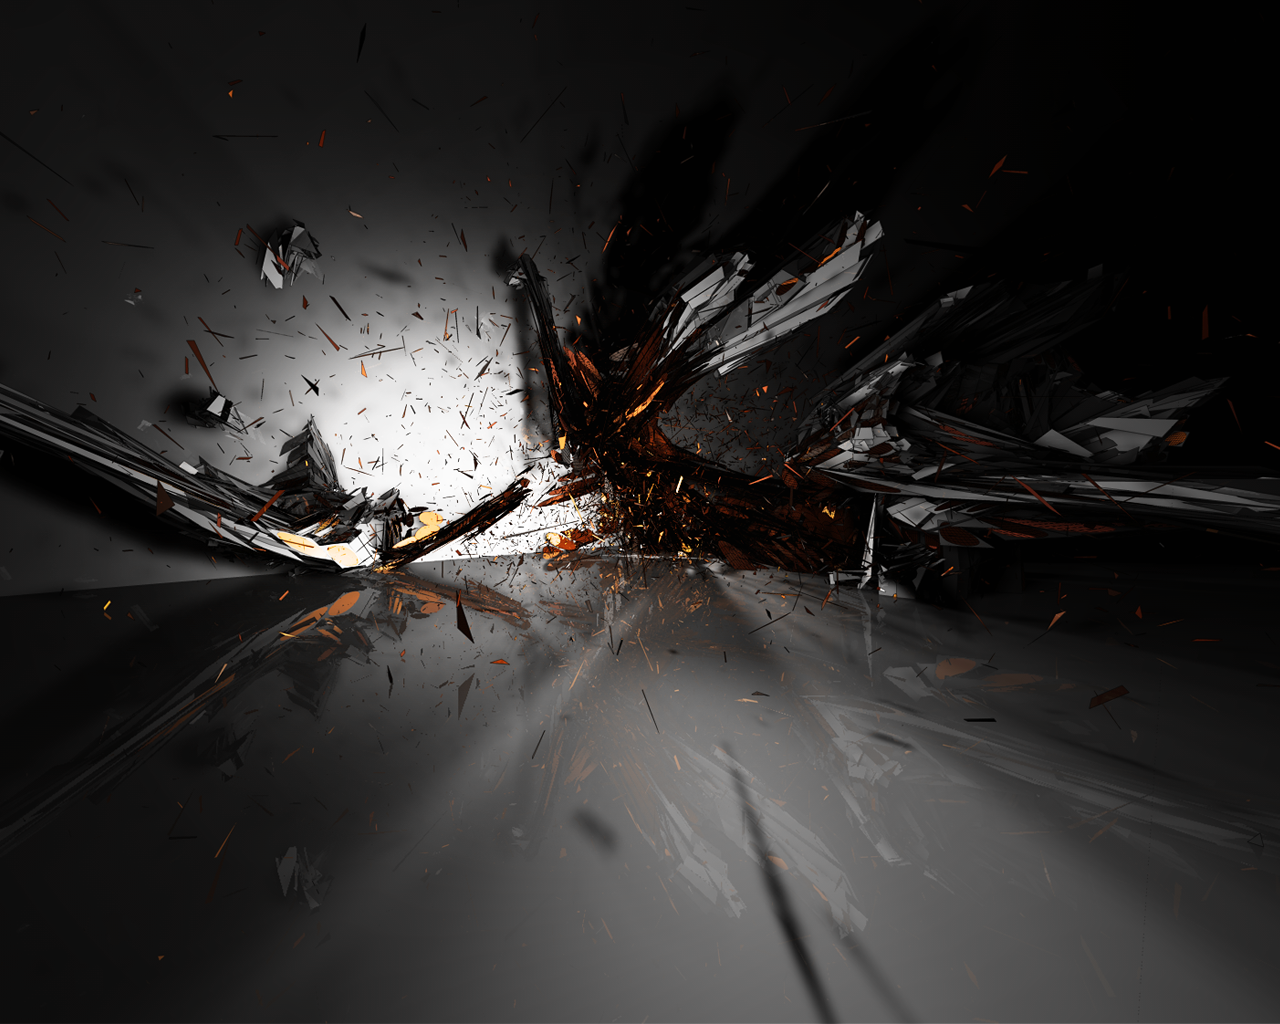 best abstract hd wallpaper 1920x1080 - photo #8